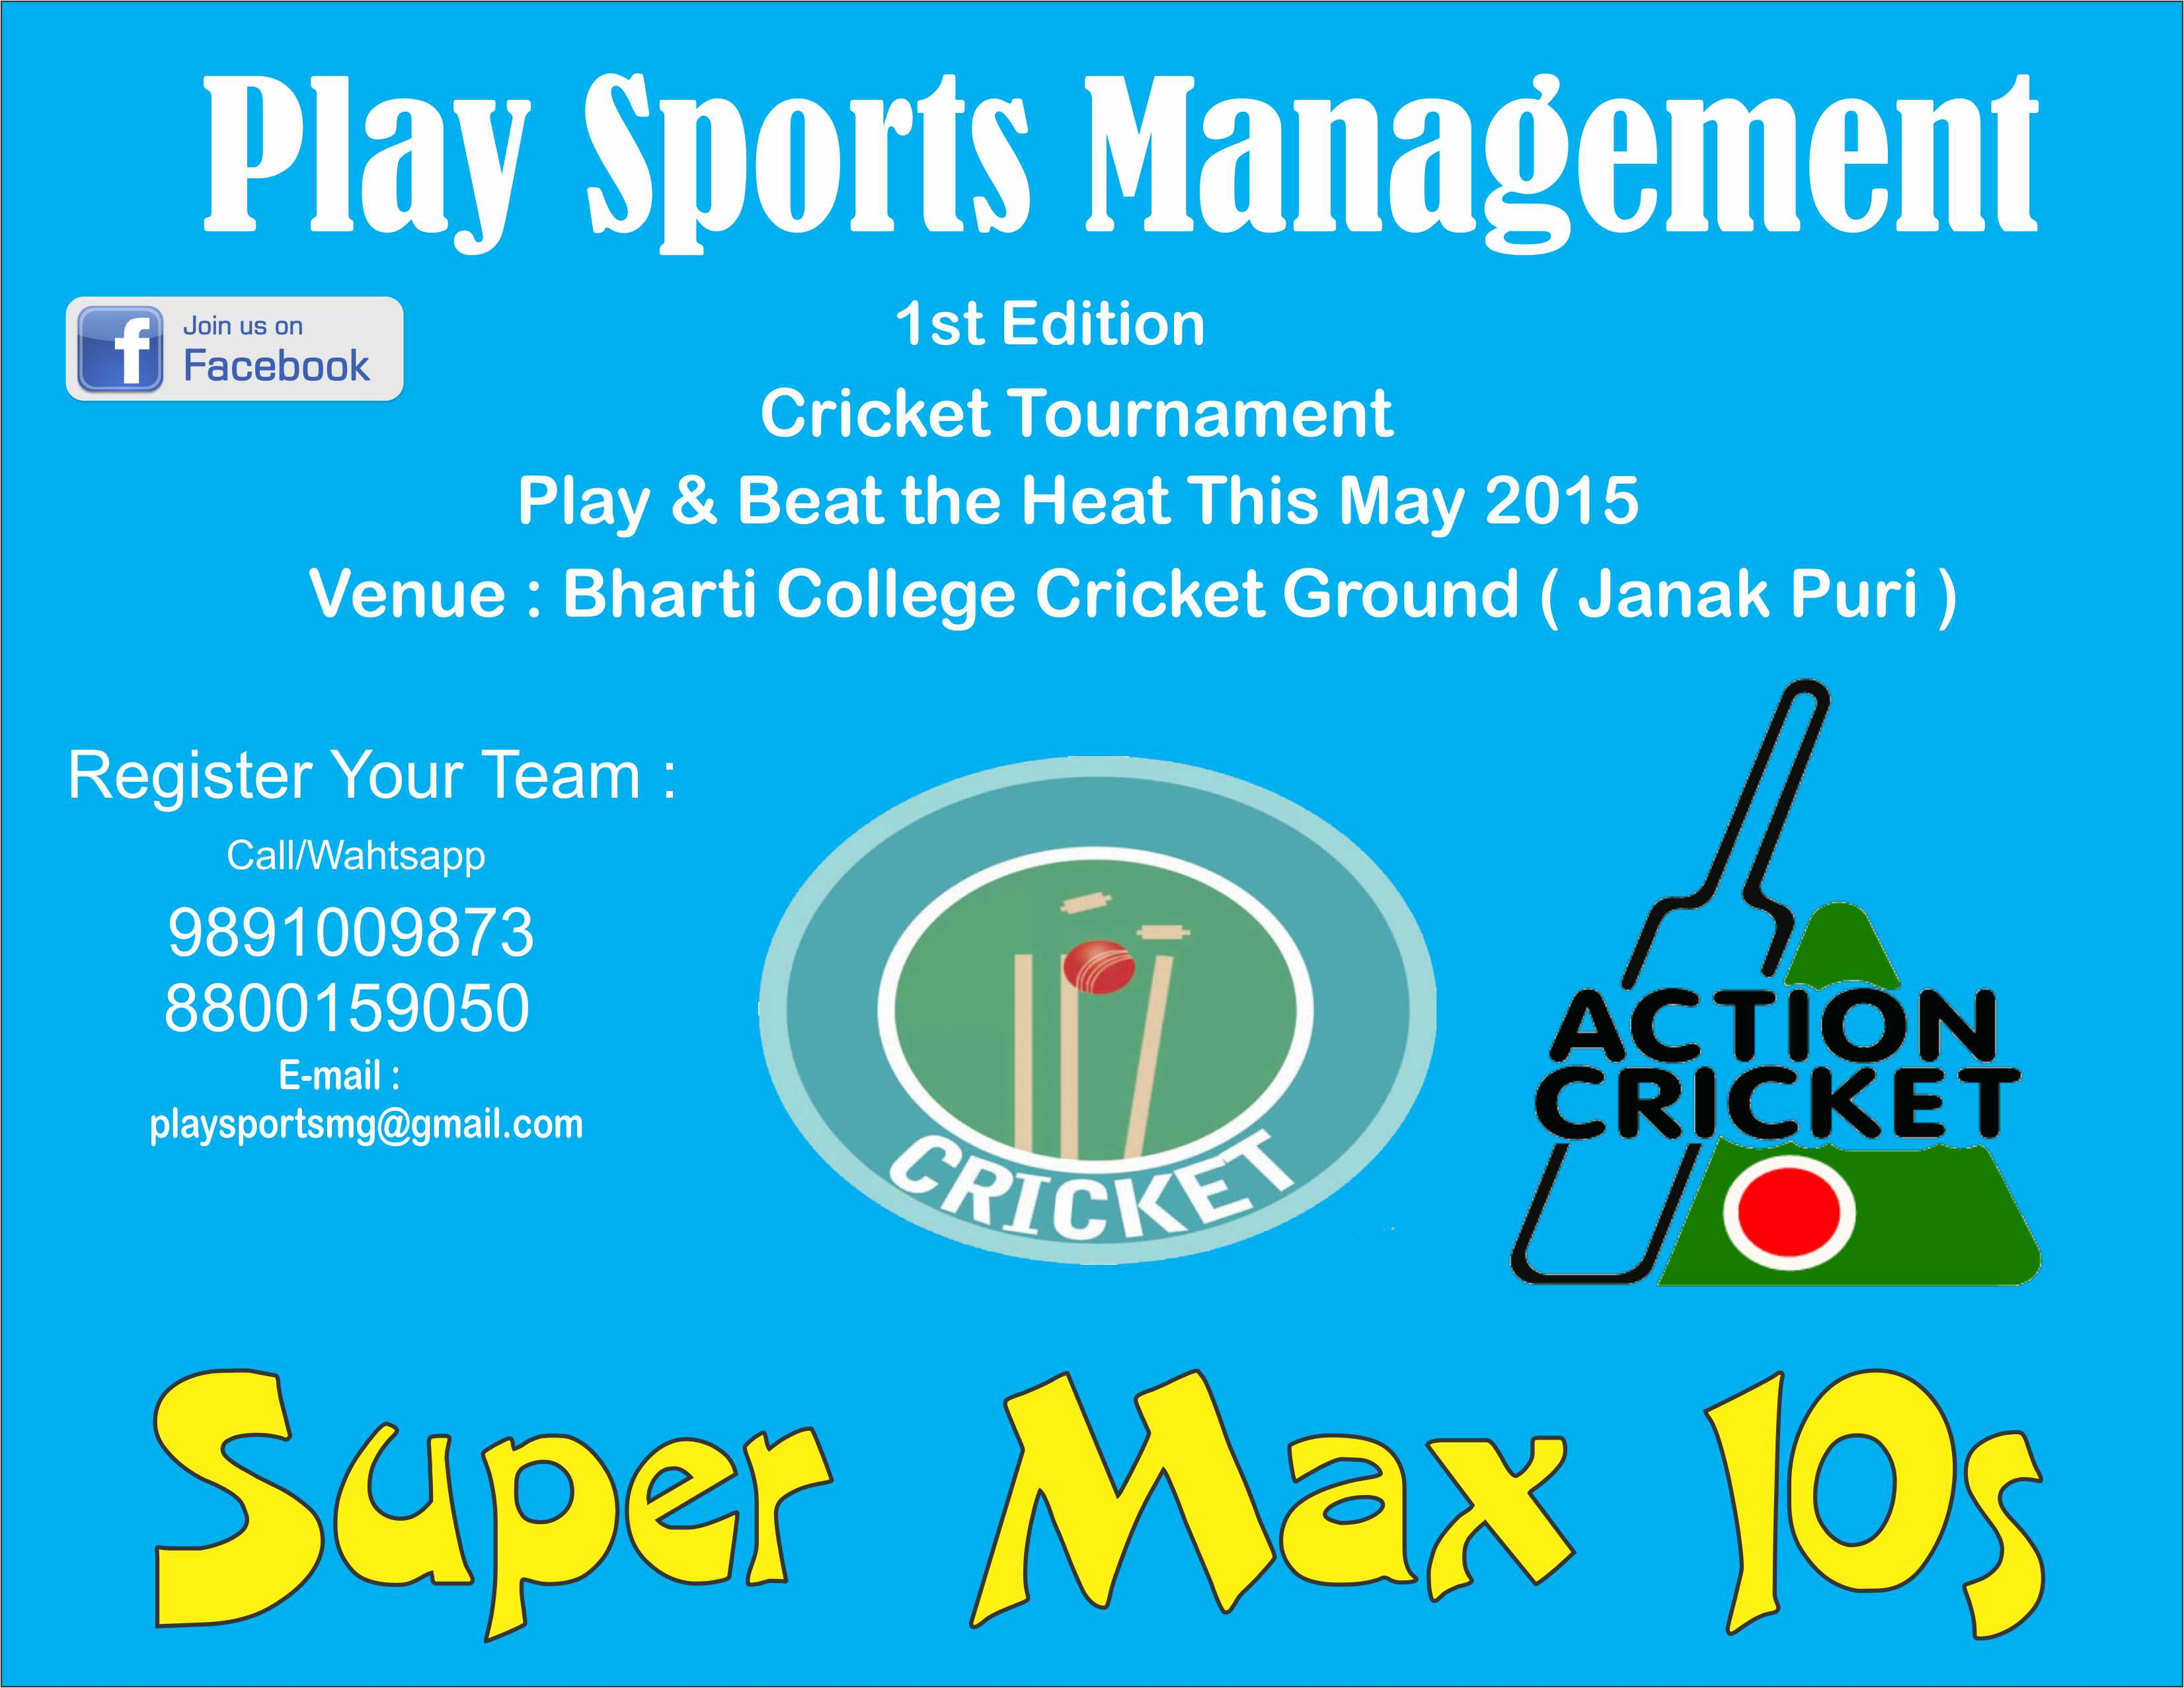 Supar Max 10 Cricket Tournament